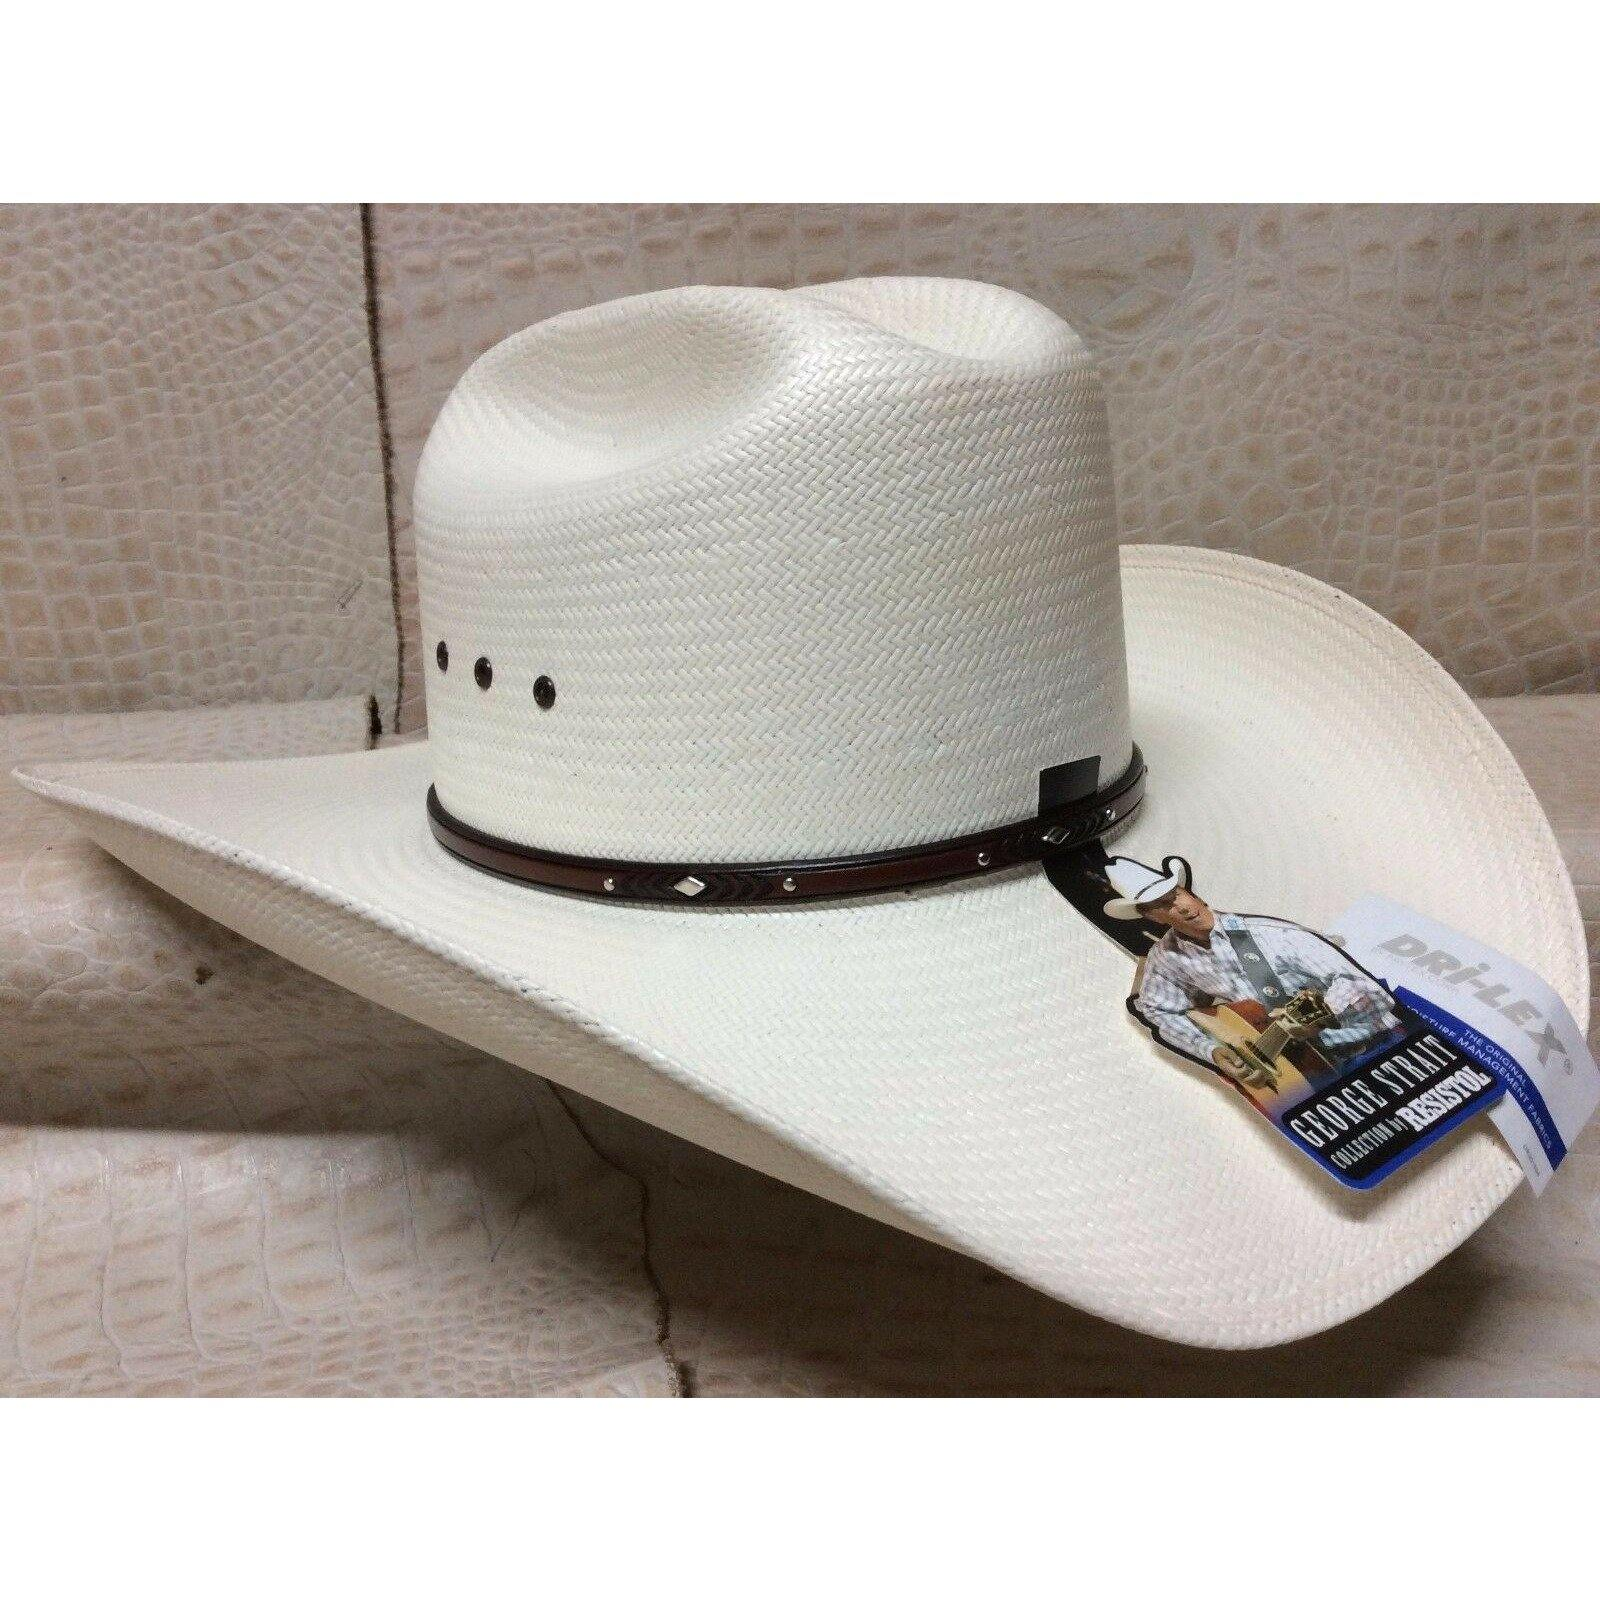 Resistol 8X George Strait Collection Palo Duro Rodeo Western Cowboy Straw Hat - CWesternwear